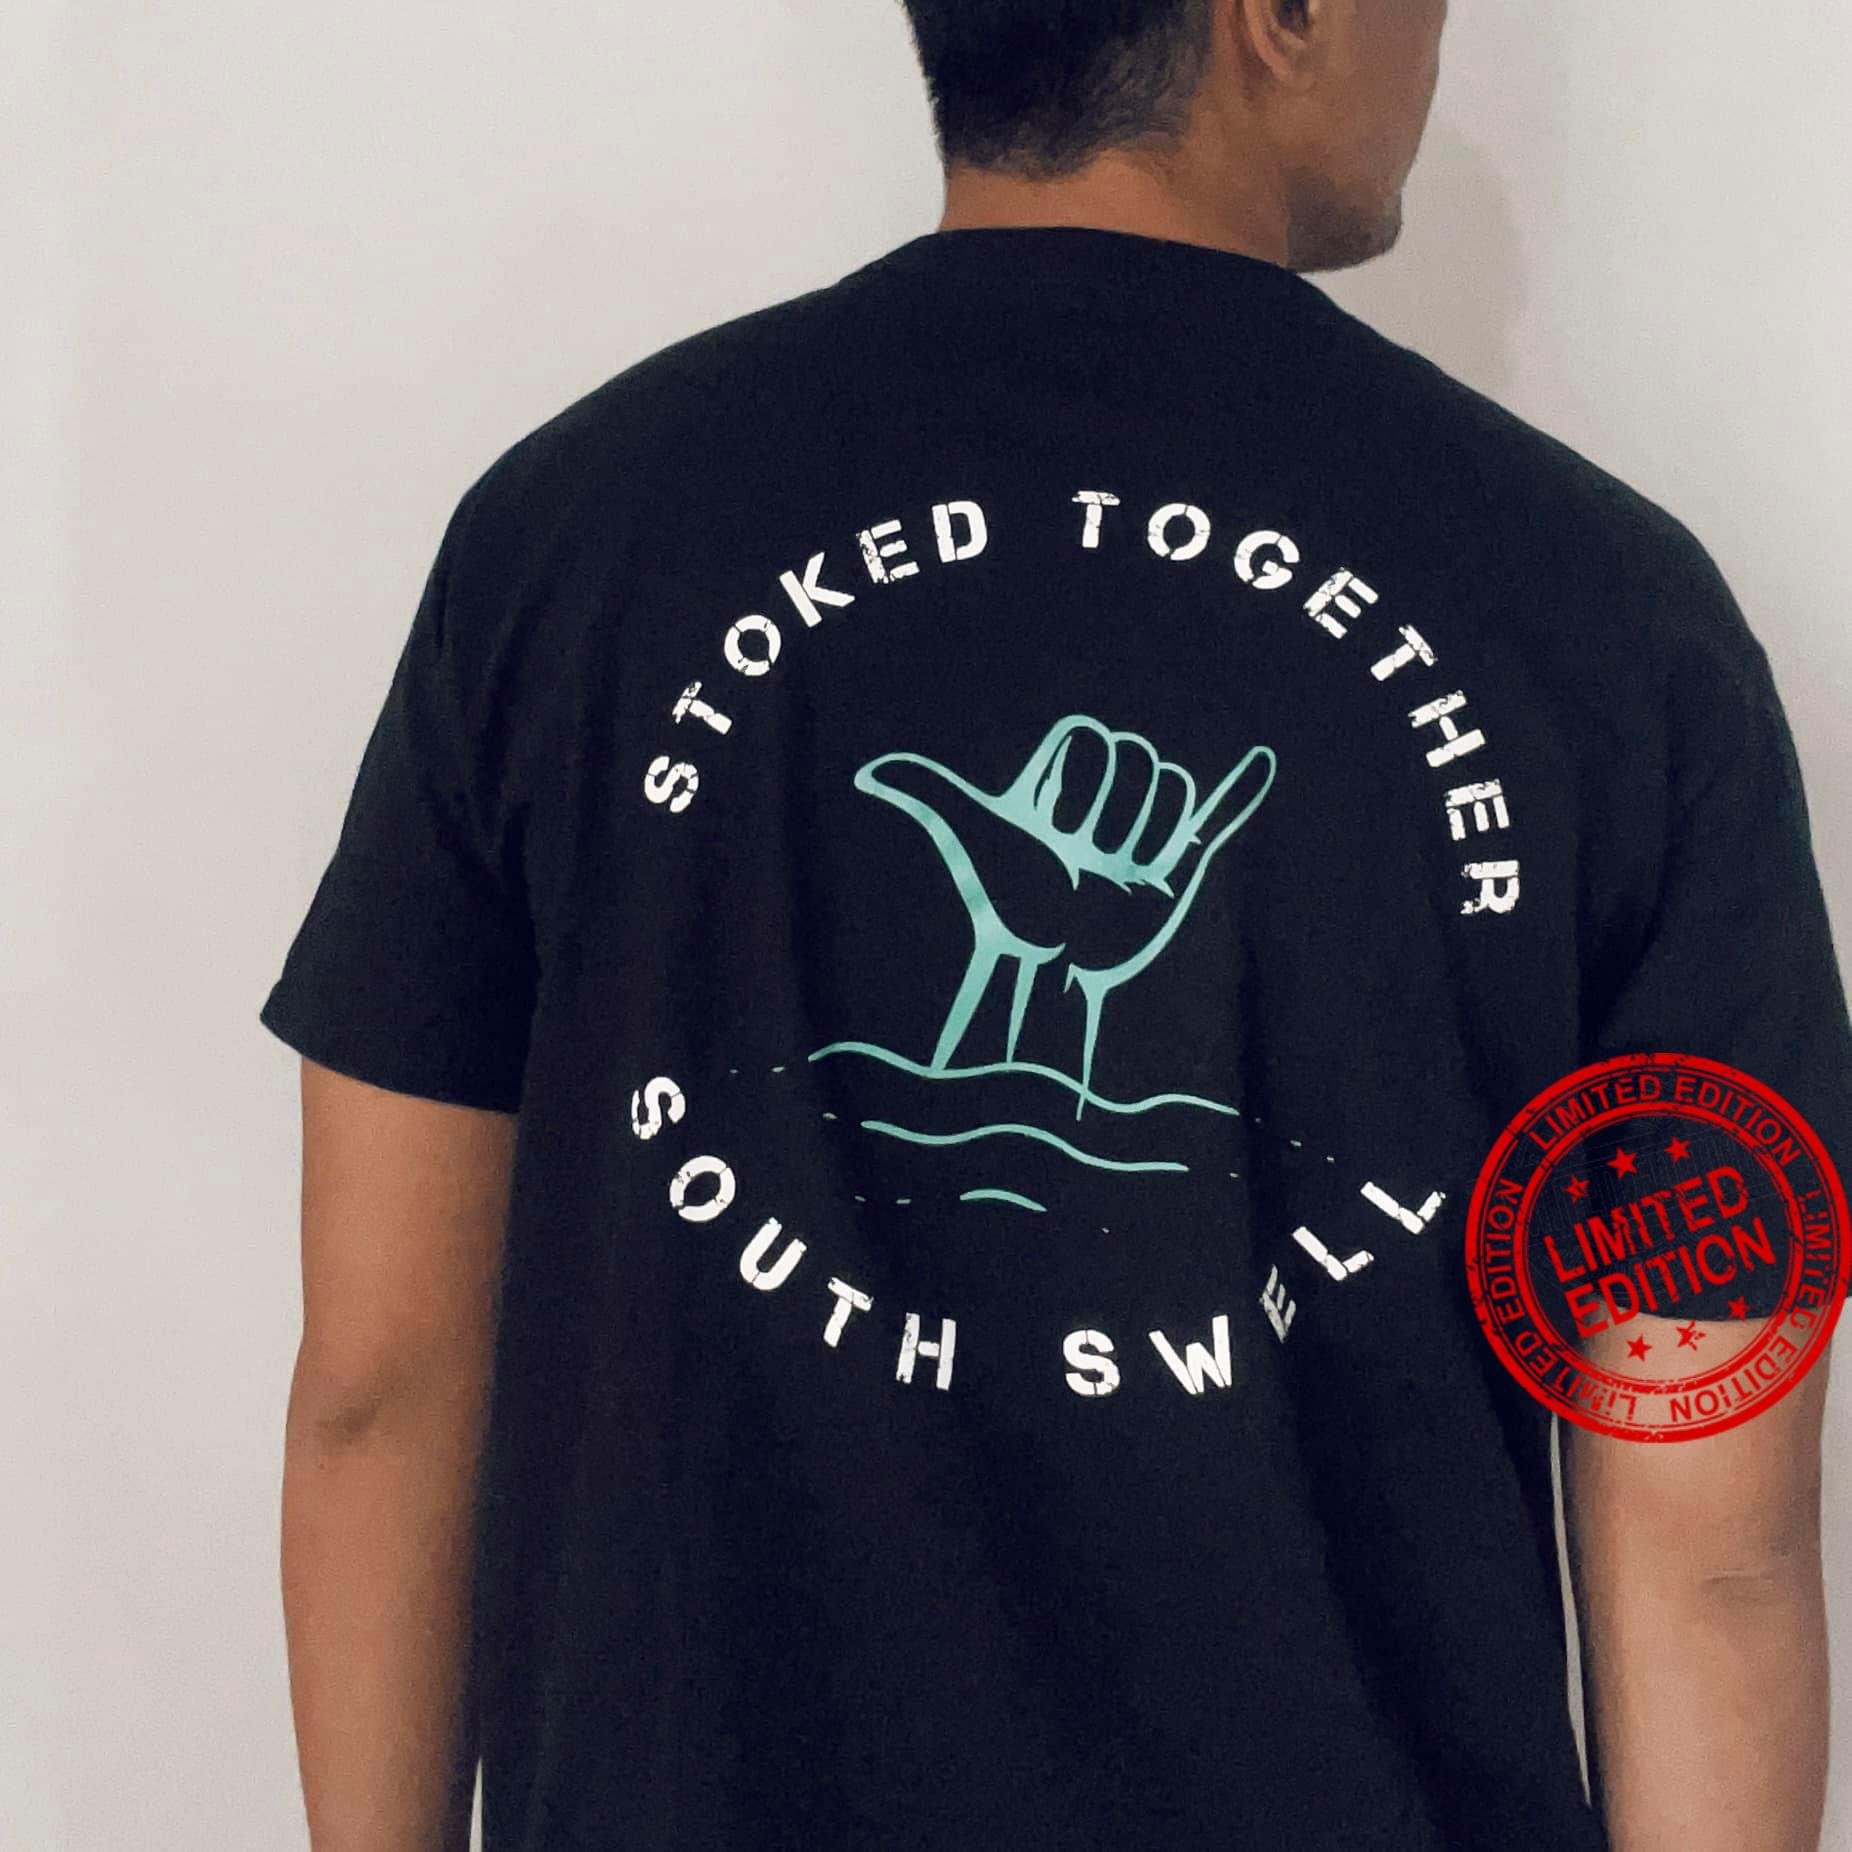 Stoked Together South Swell Shirt